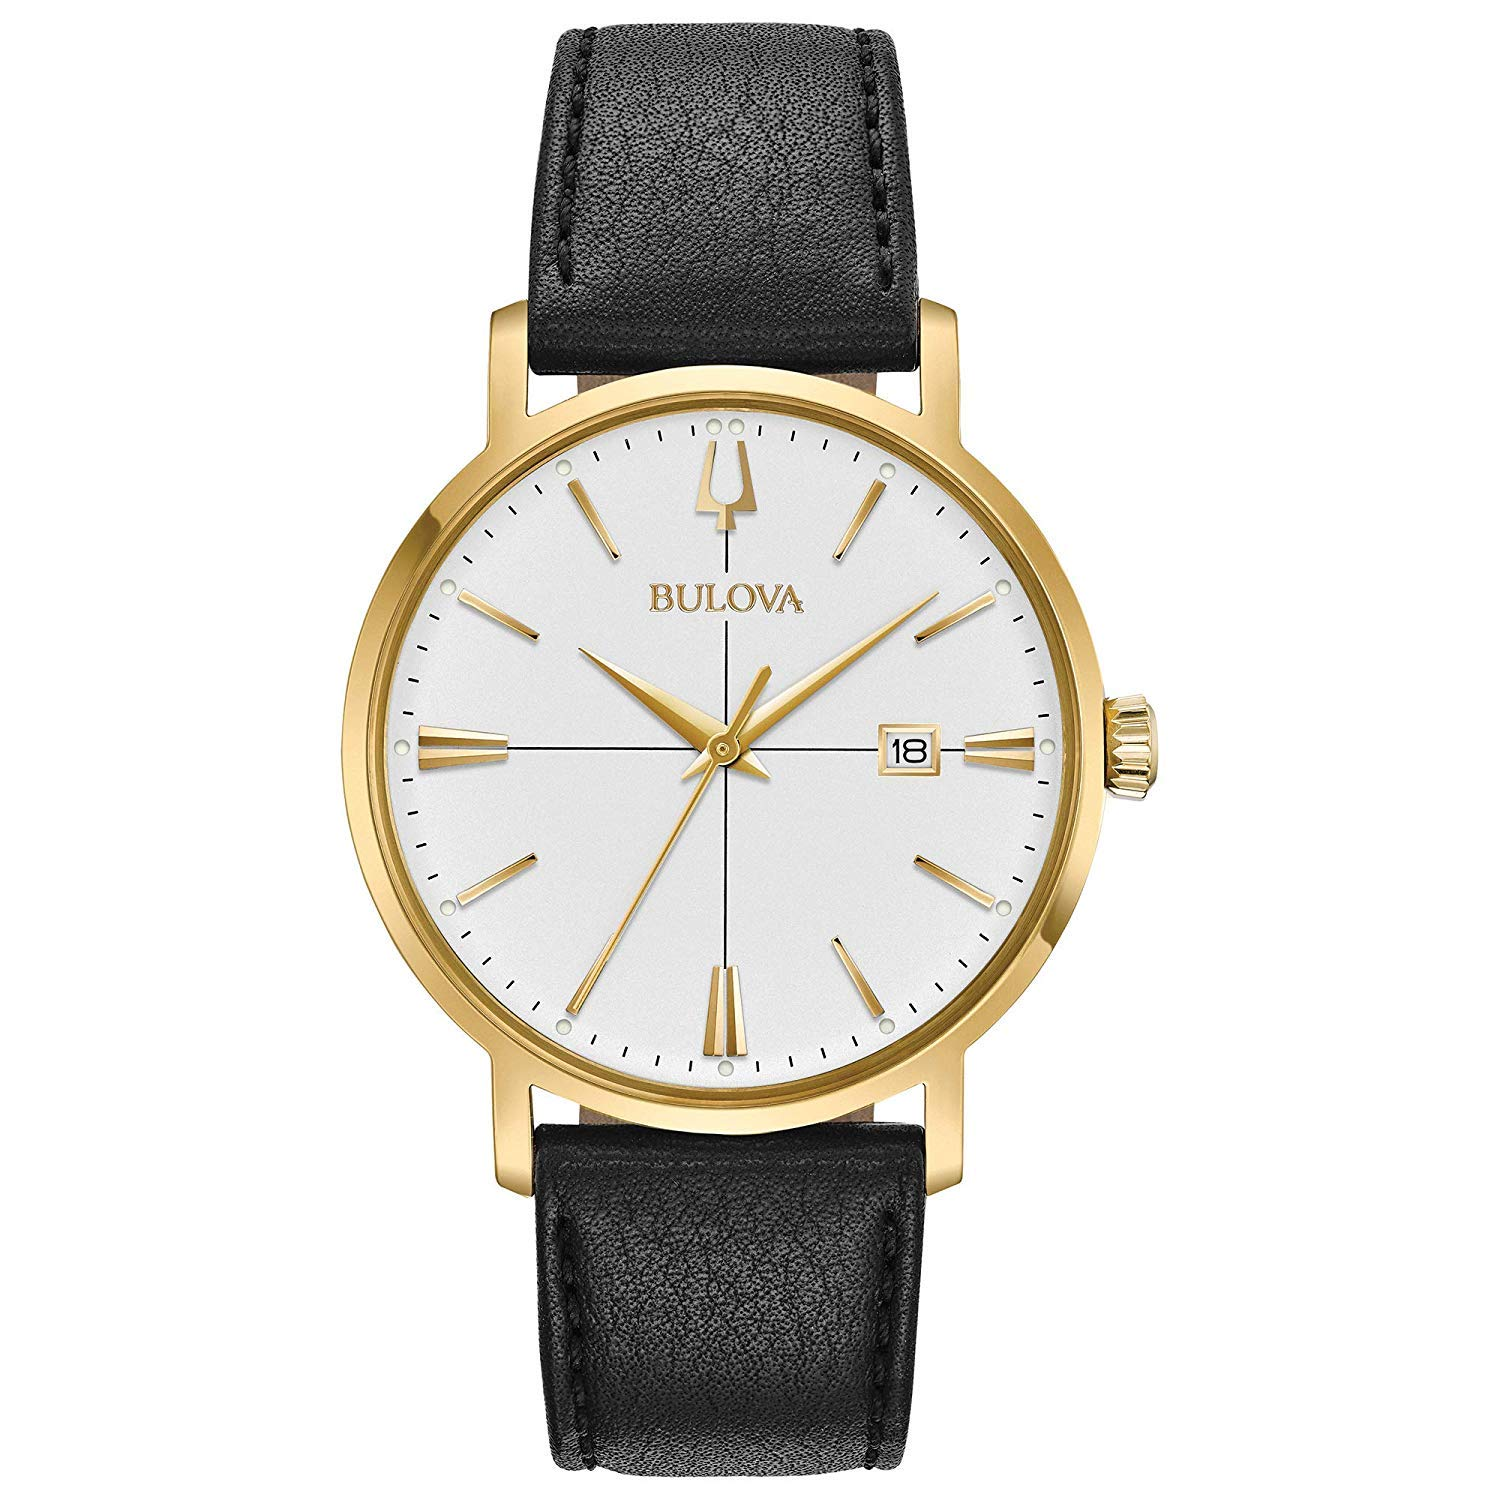 Bulova Mens Analogue Classic Quartz Watch with Leather Strap 97B172